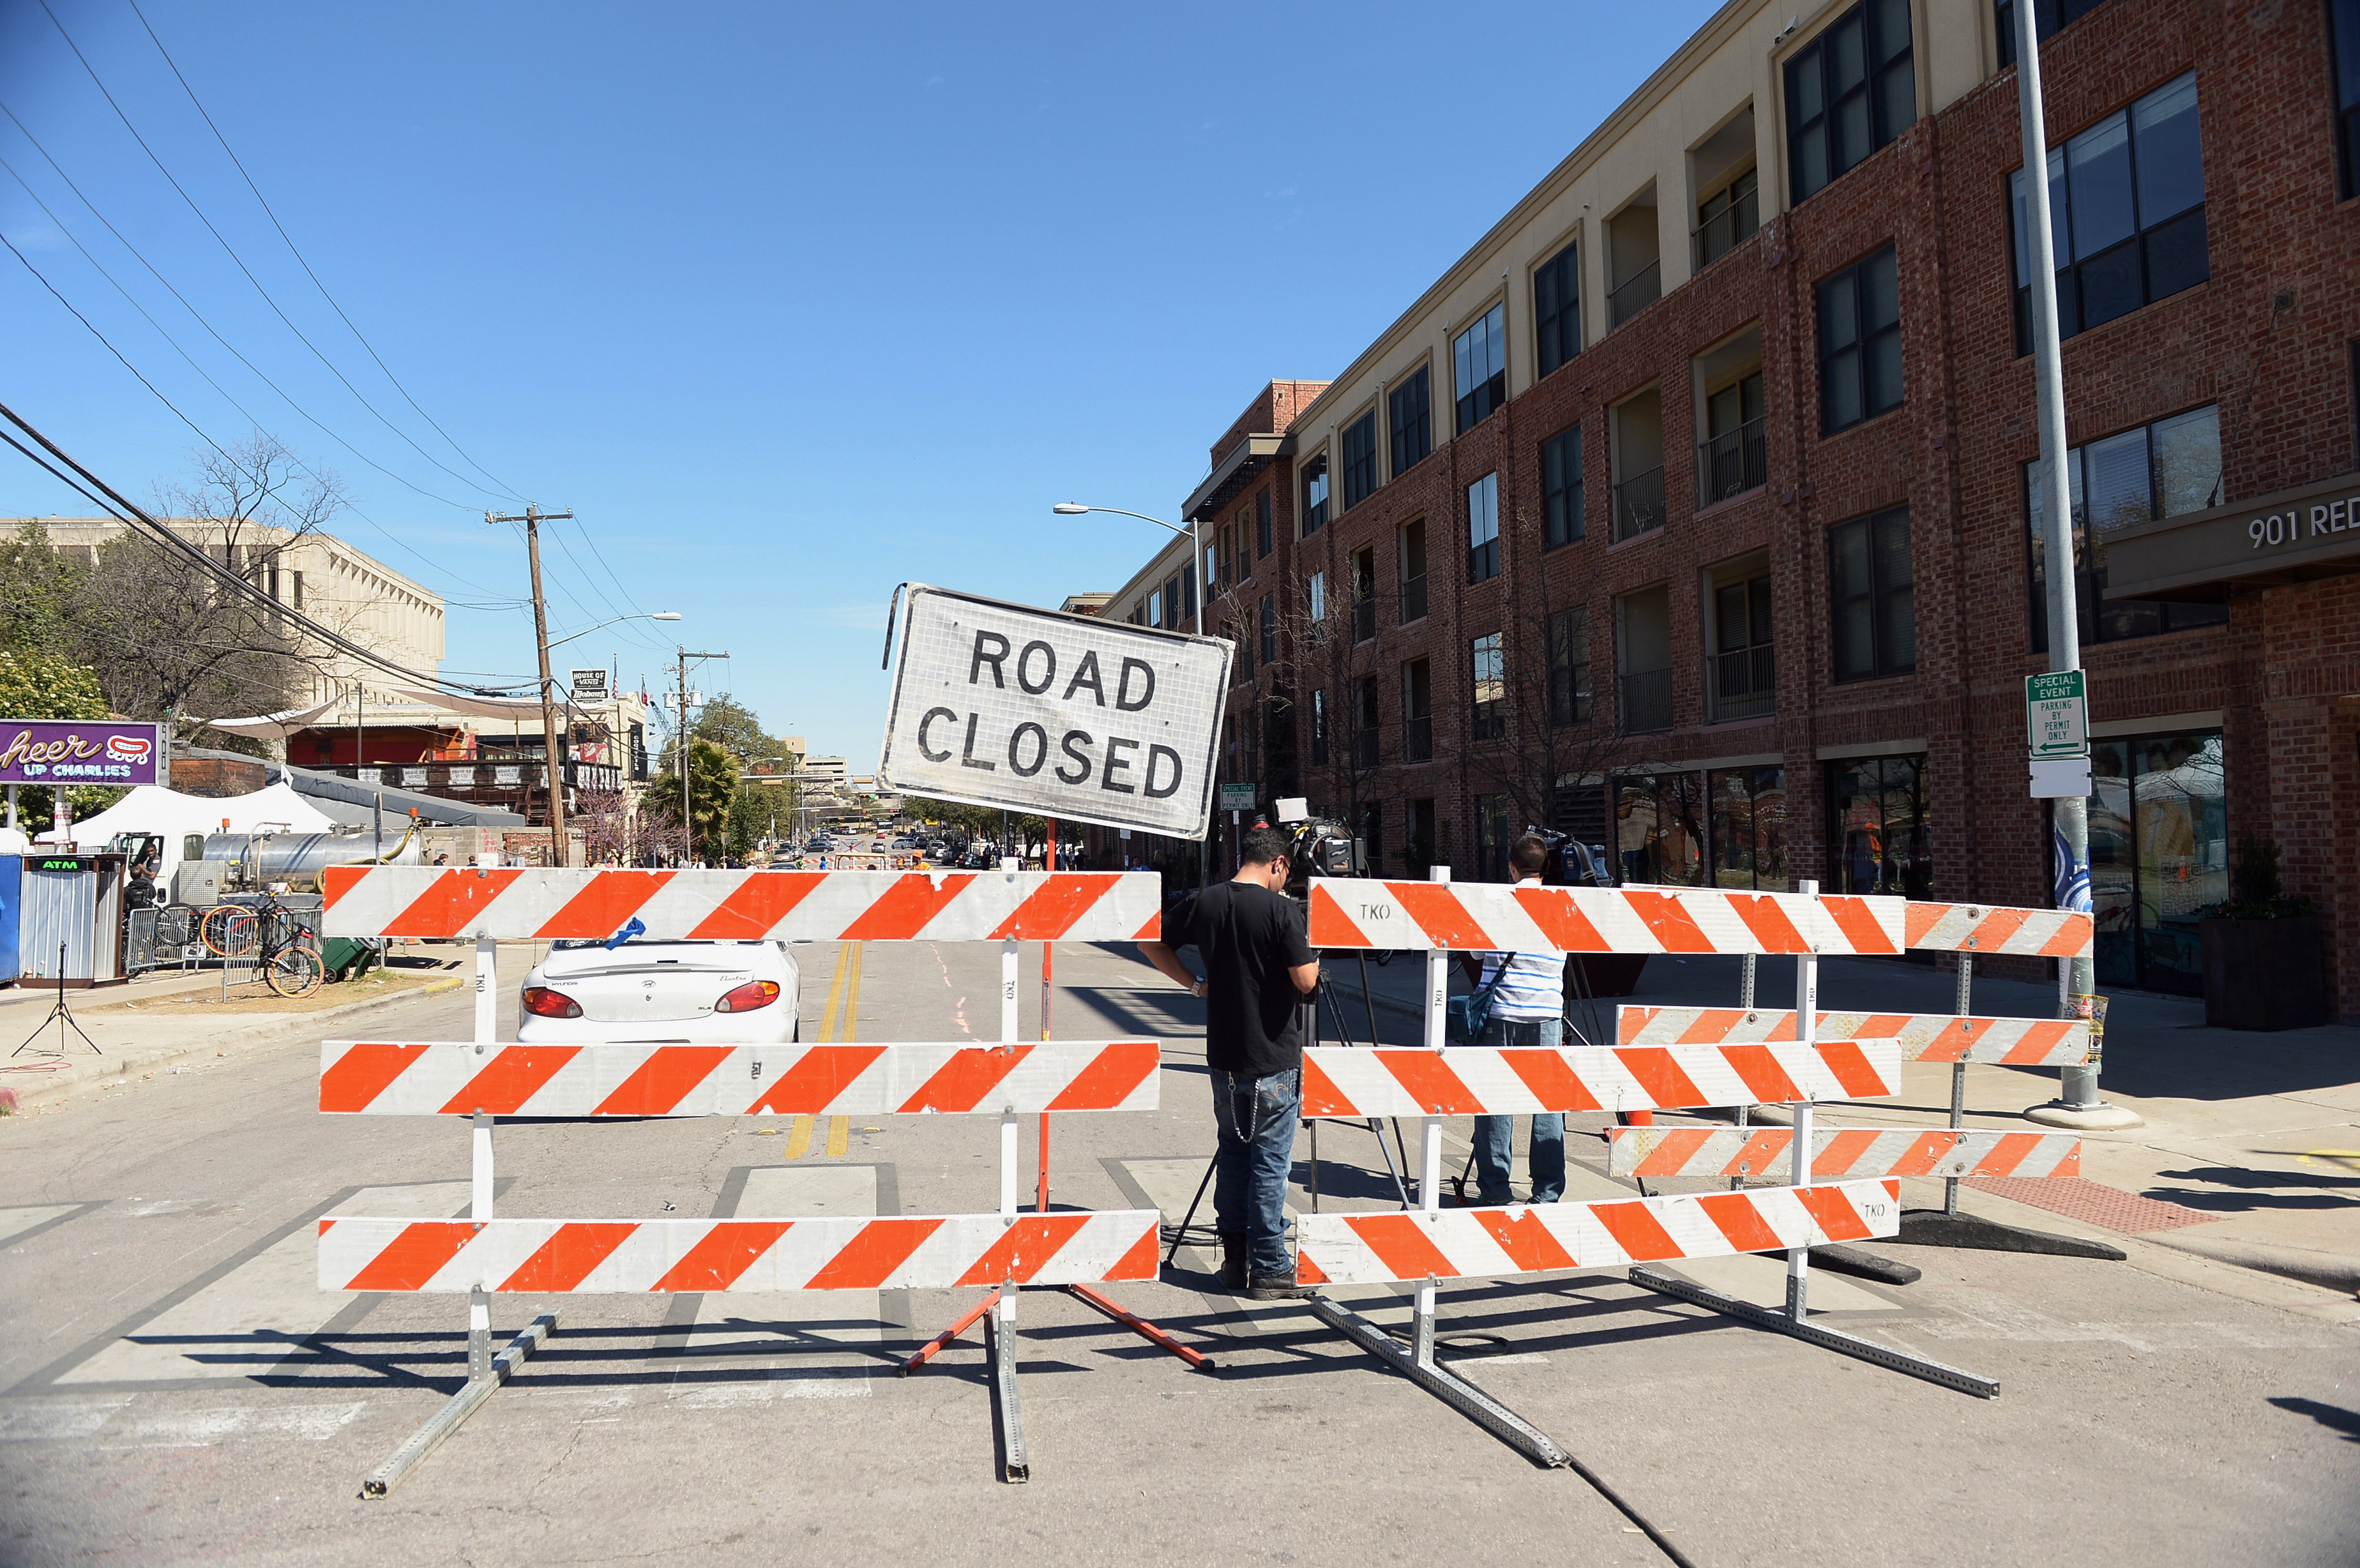 Barricades stand near the scene of a deadly car accident at the South by Southwest Music, Film and Interactive Festival on March 13, 2014 in Austin.